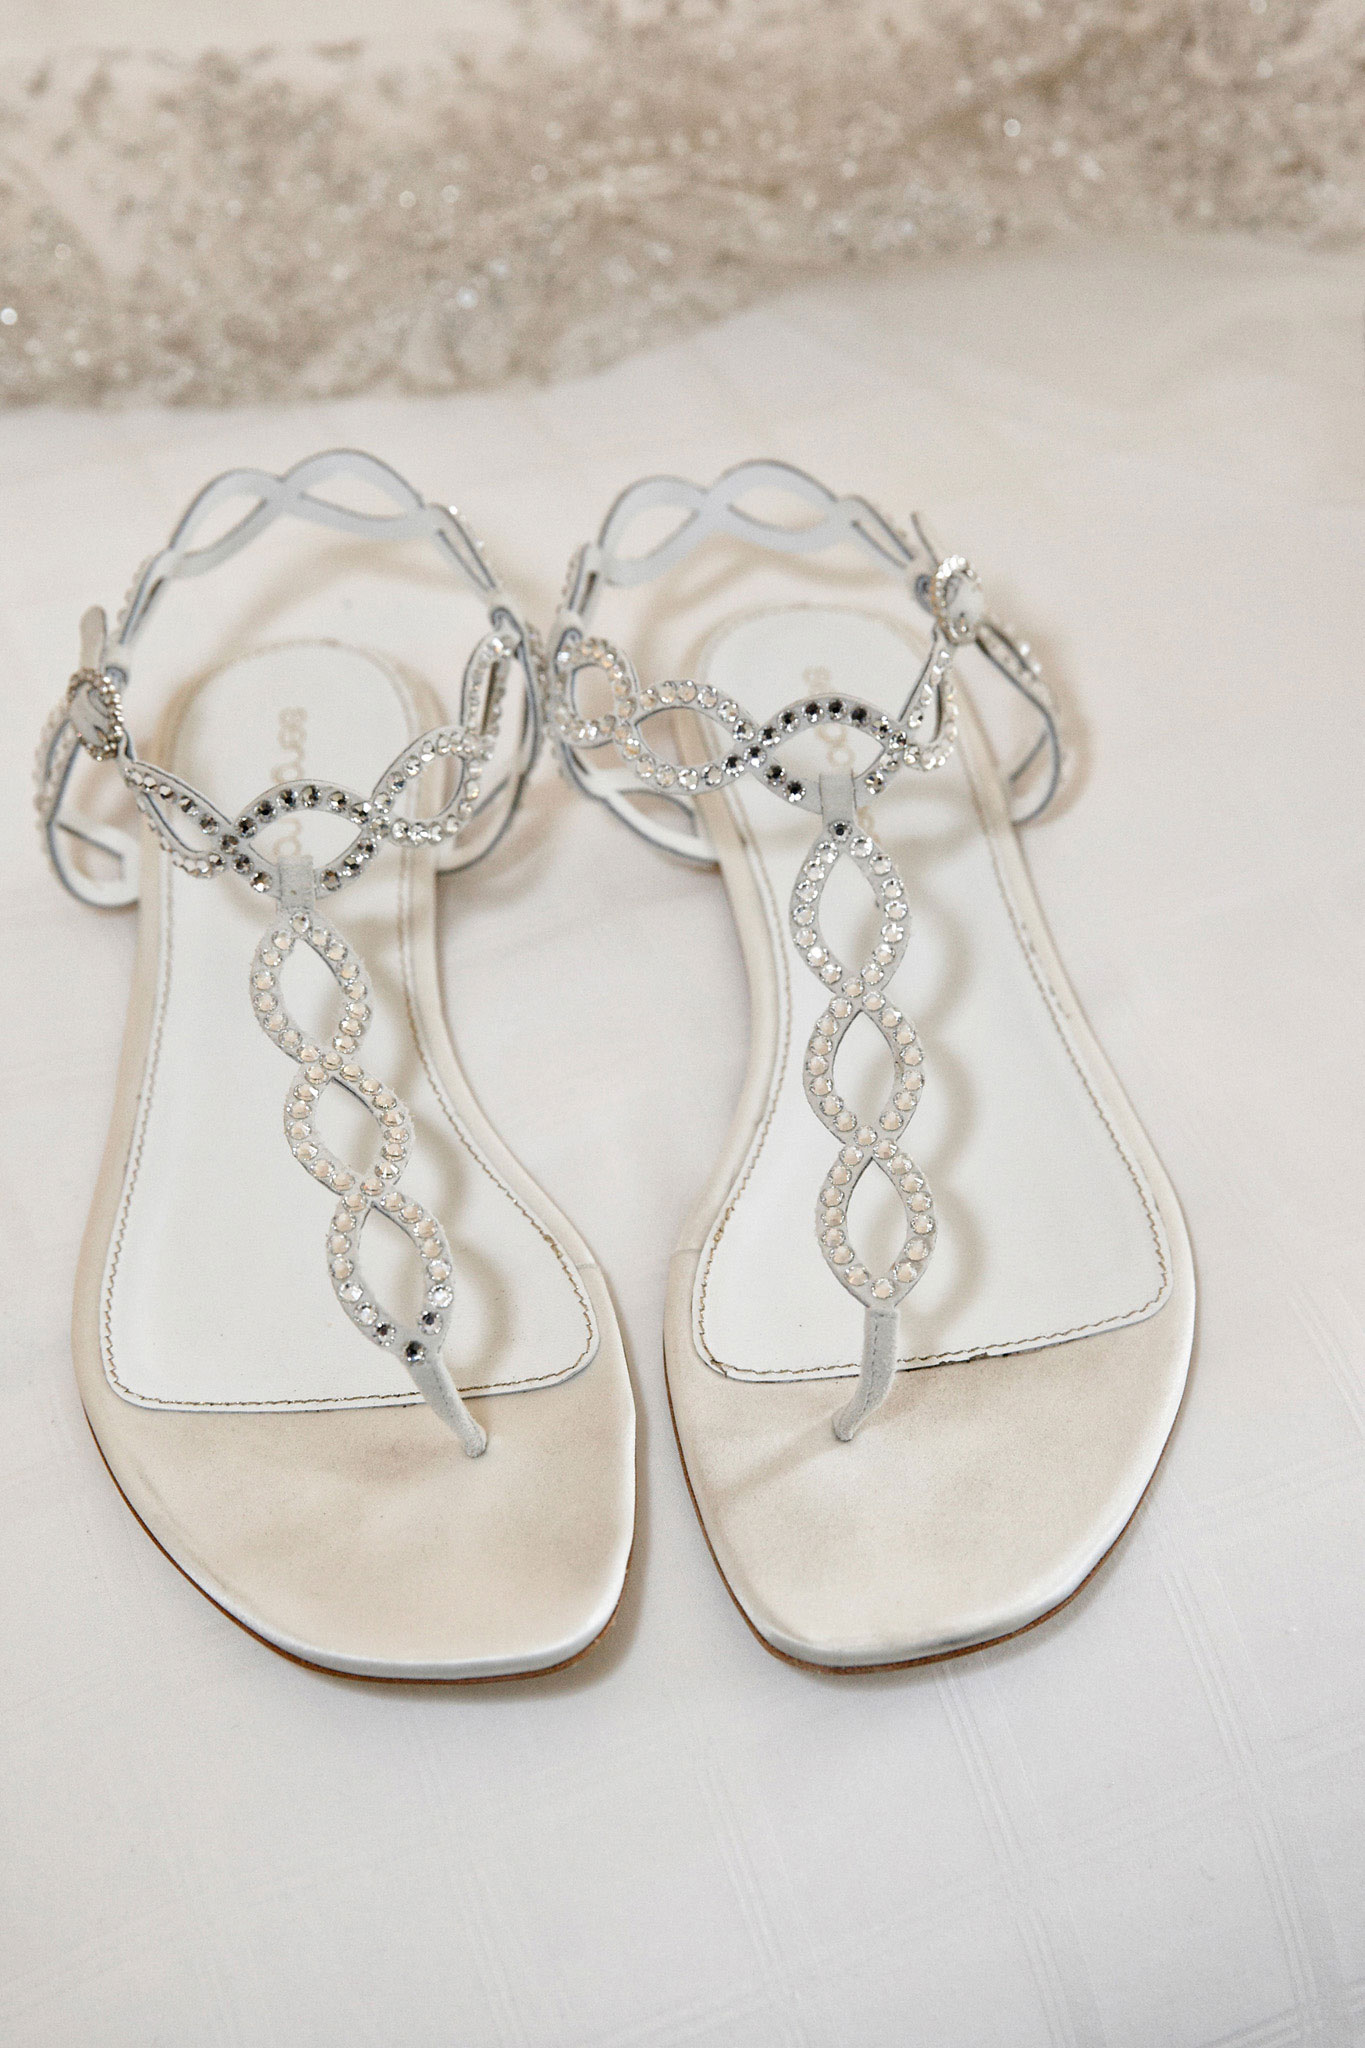 55e86906a33 Wedding Shoes  Flat Shoes and Sandals for Brides - Inside Weddings